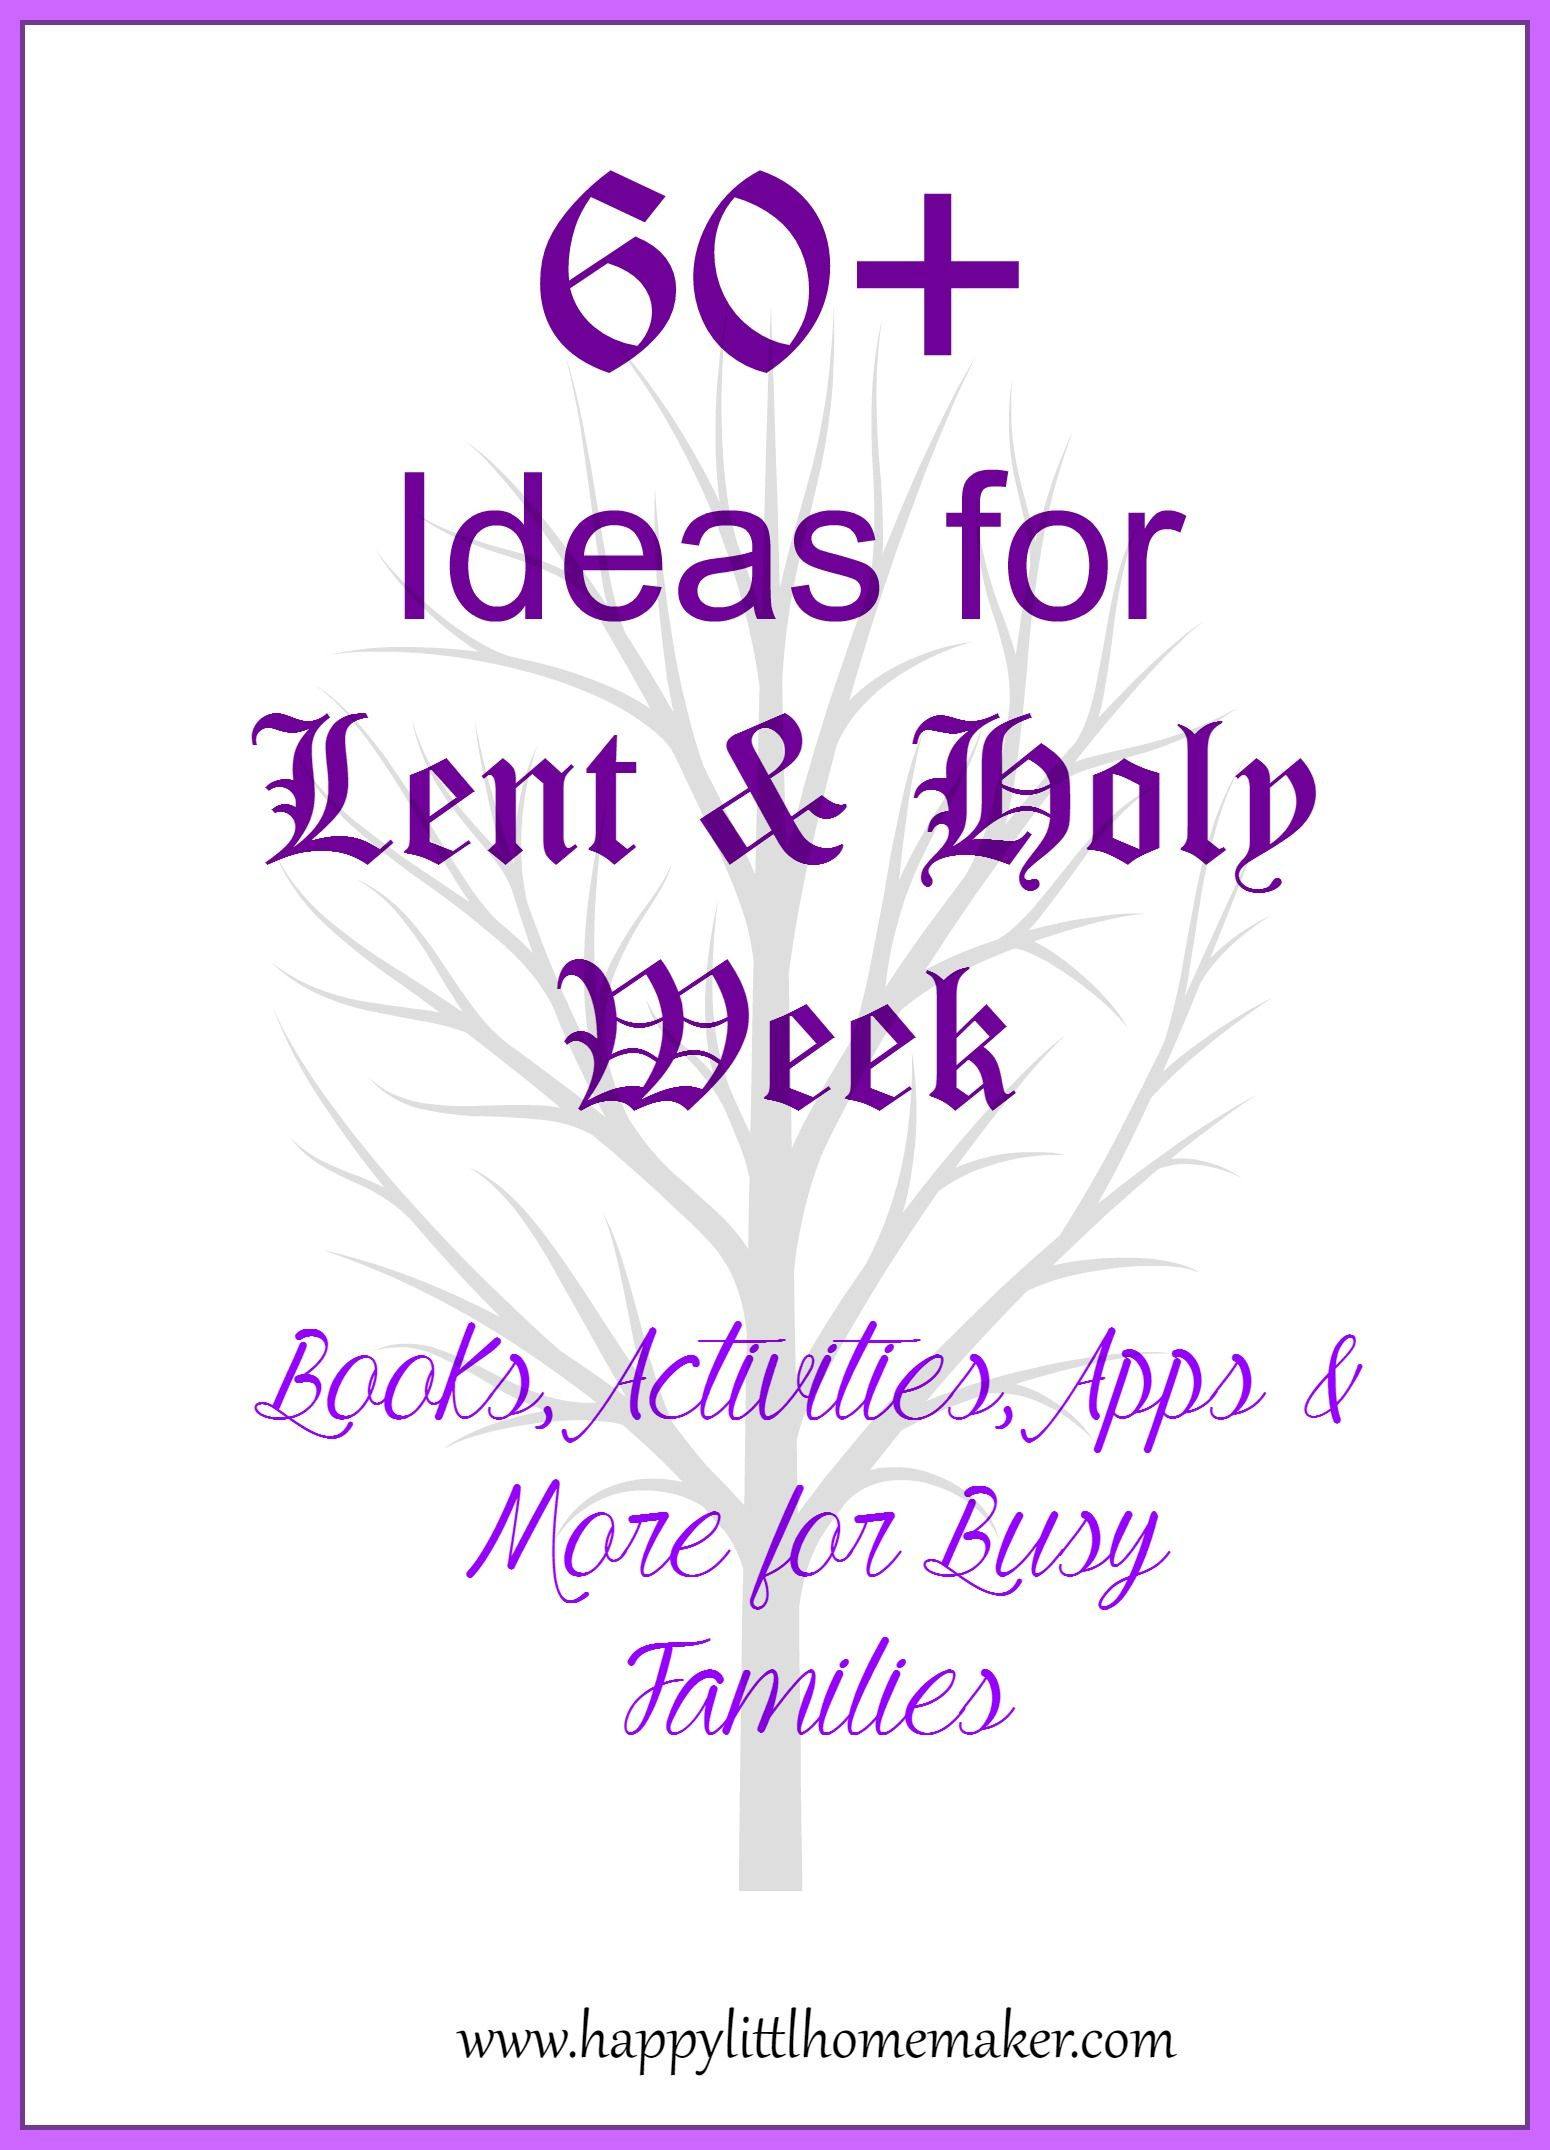 60 Ideas For Lent Amp Holy Week Including Books Activities Apps And More For Busy Families